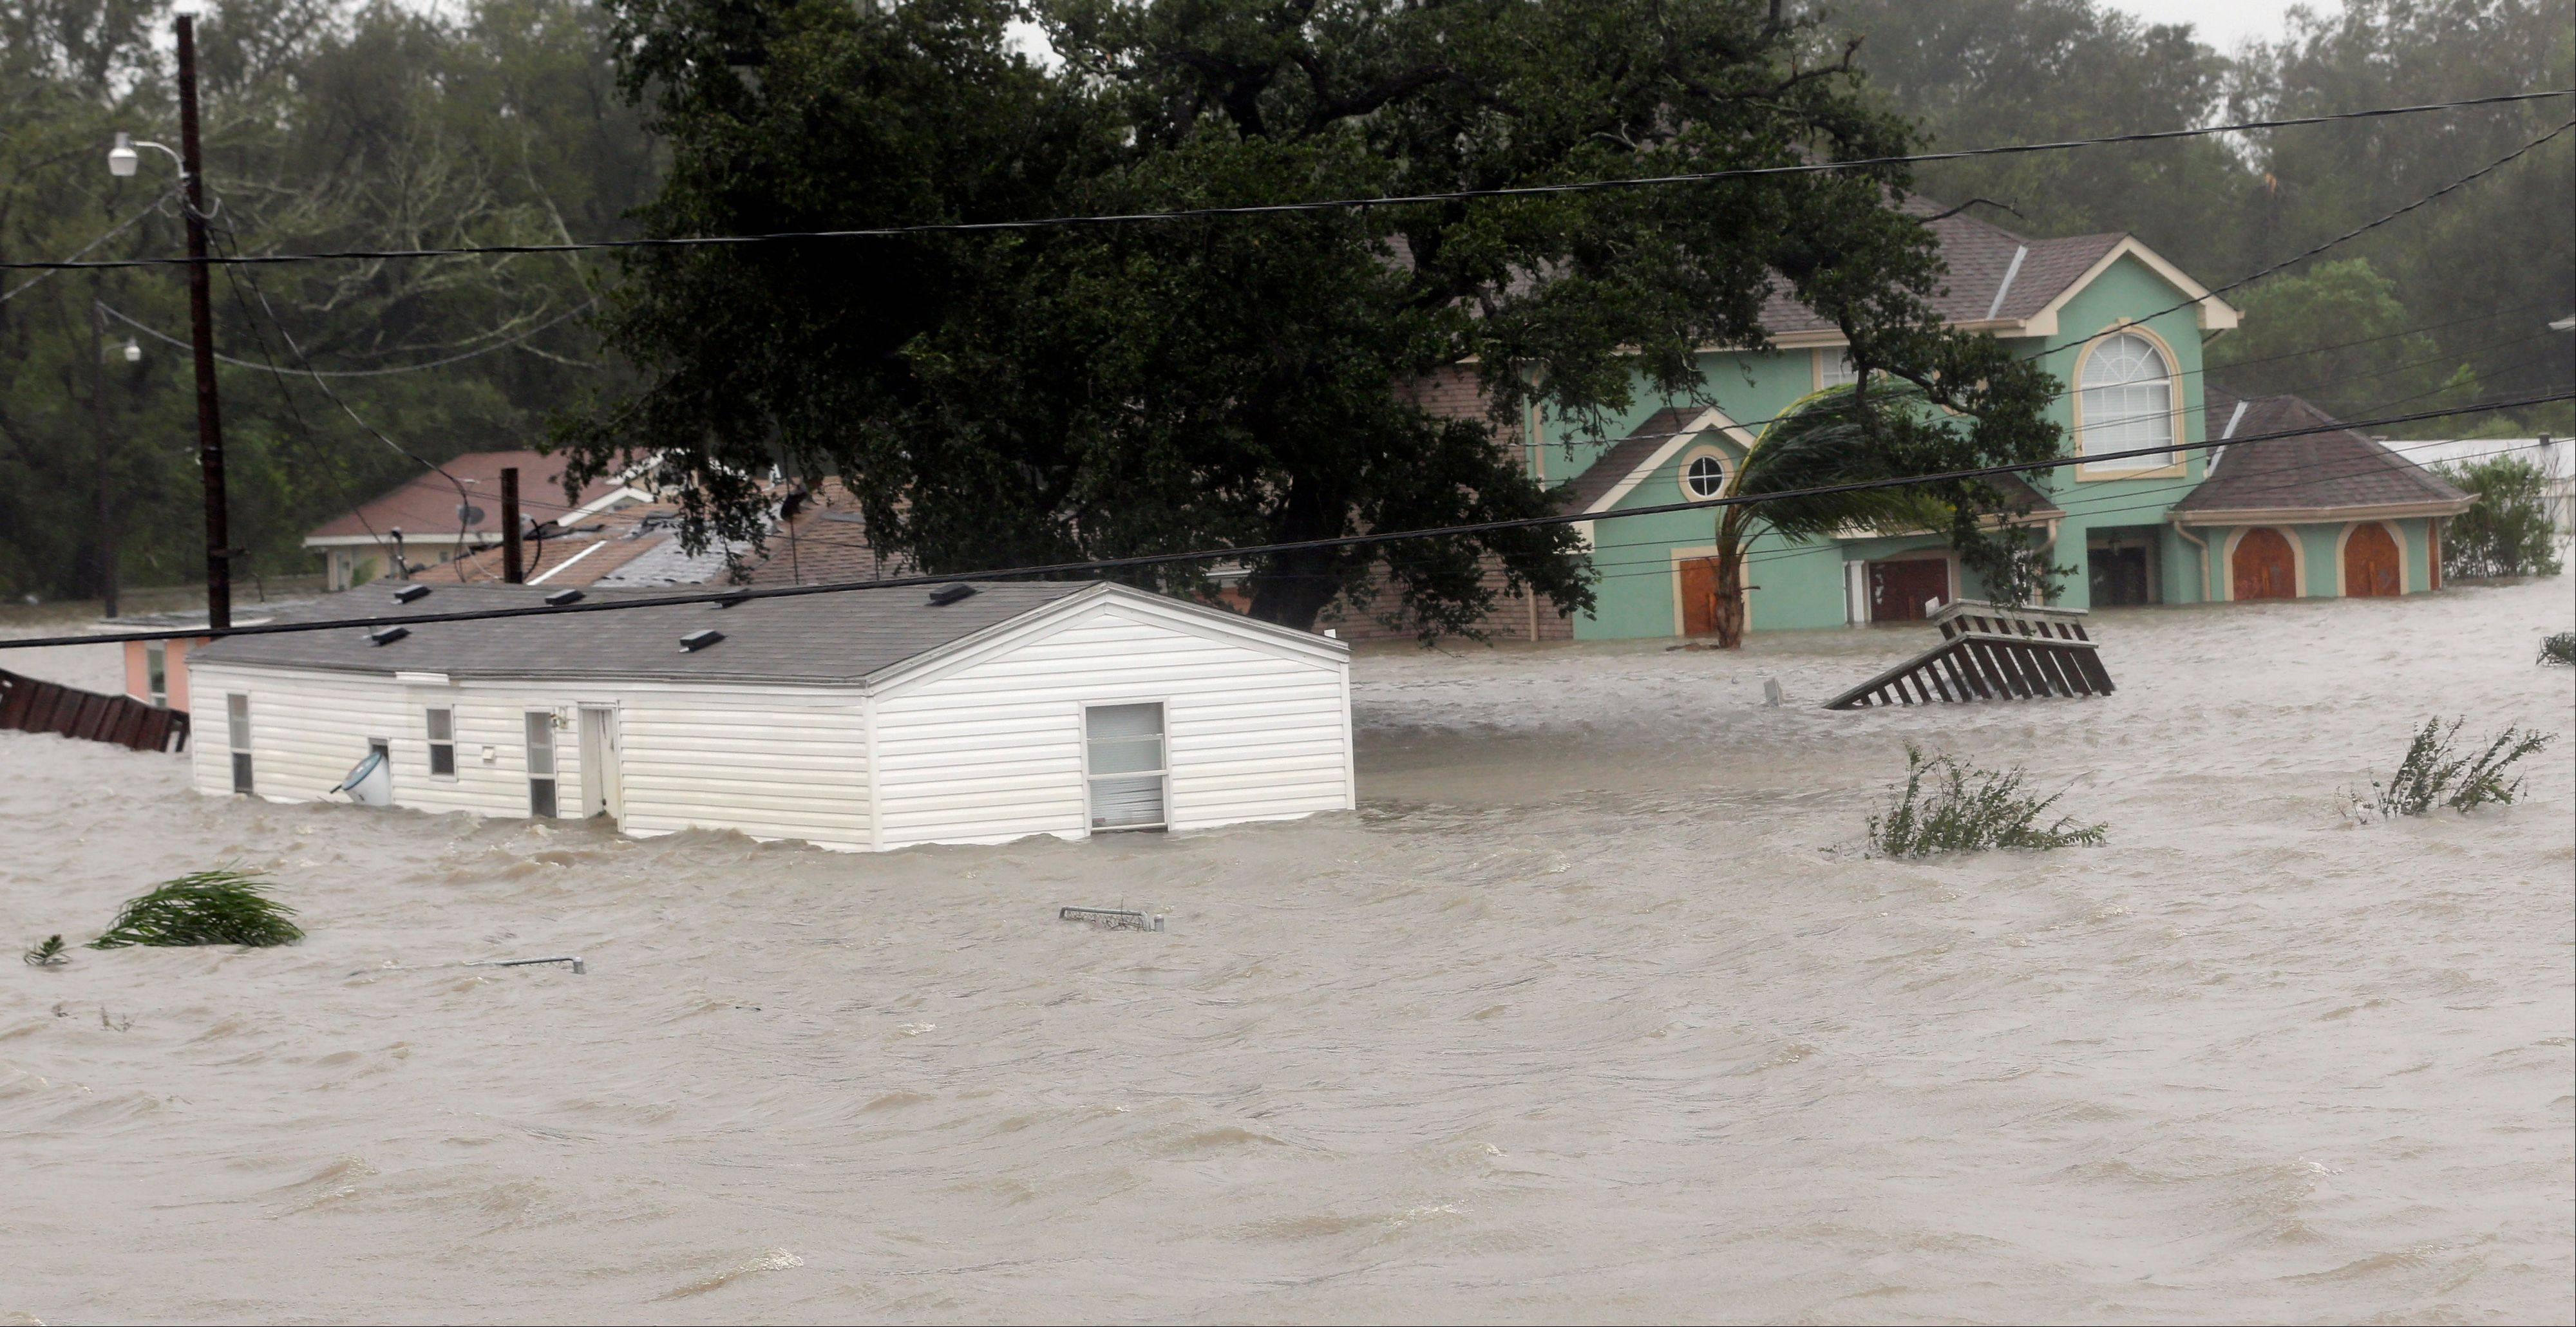 Homes are flooded as Hurricane Isaac hits Wednesday, Aug. 29, 2012, in Braithwaite, La.